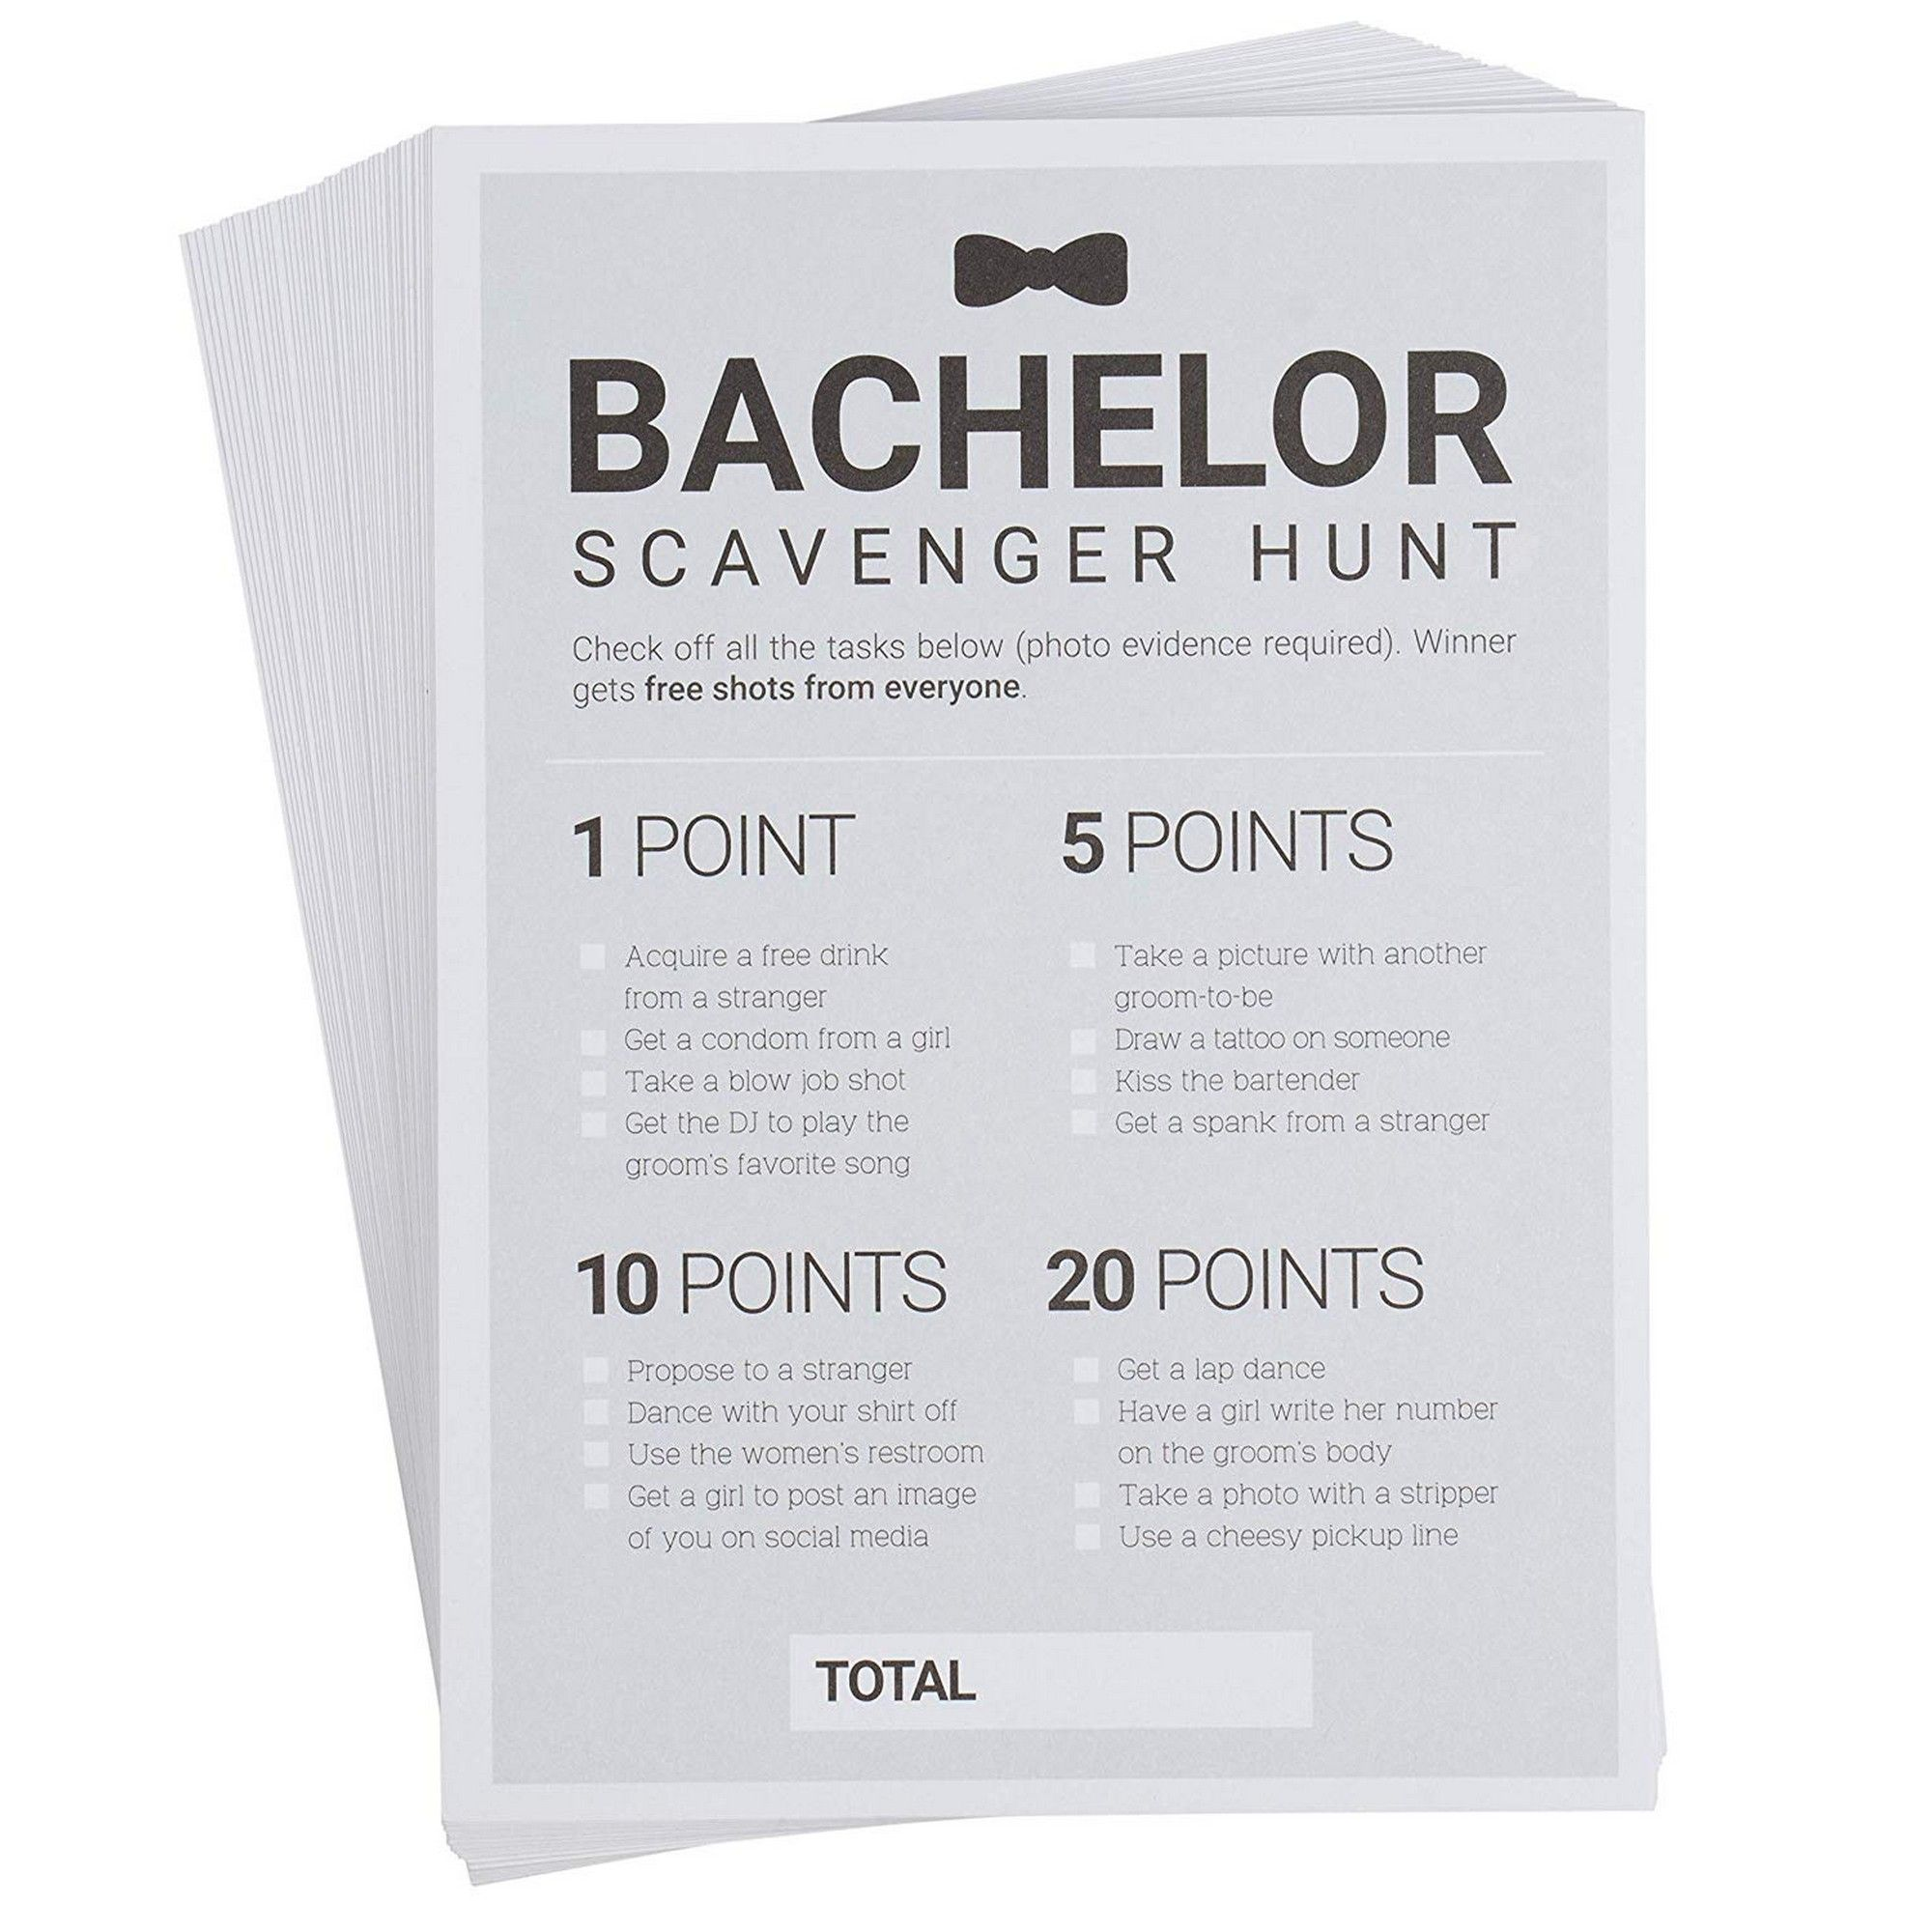 Decorations and Favors Funny Bachelor Party Ideas Gifts Drinking Game Supplies Bachelor Party Scavenger Hunt